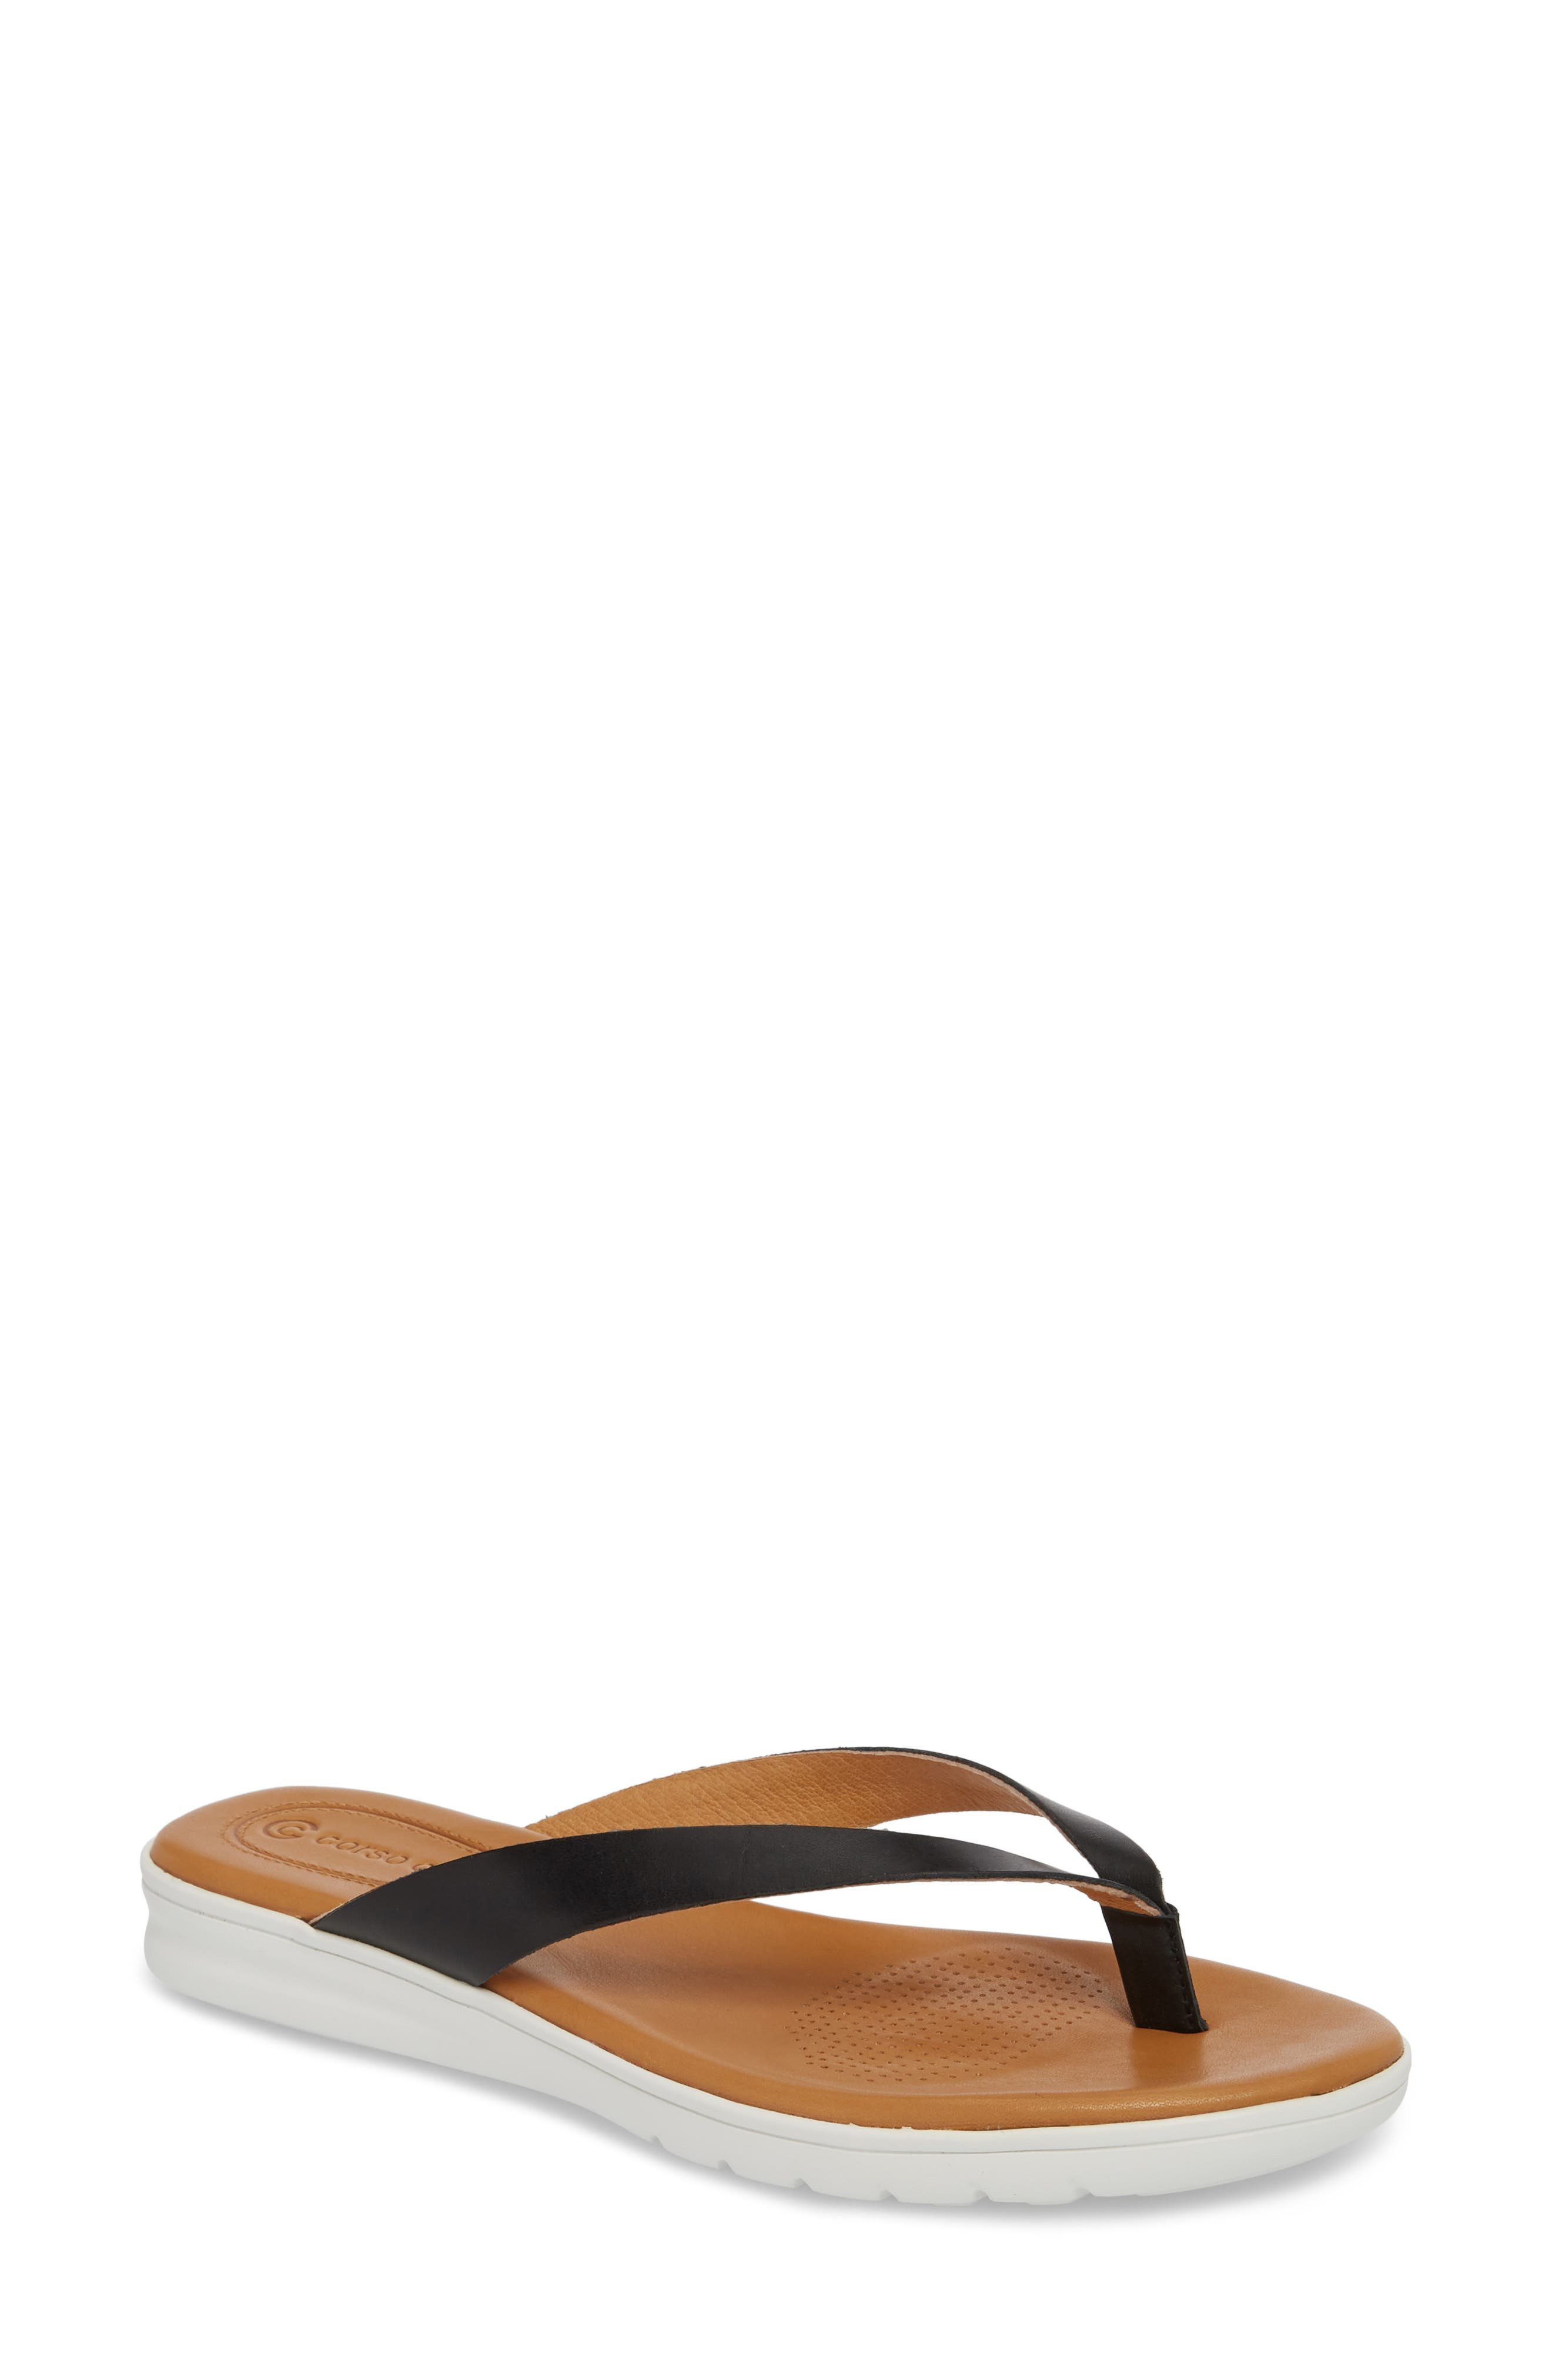 Tinnah Flip Flop,                         Main,                         color, BLACK/ BLACK LEATHER